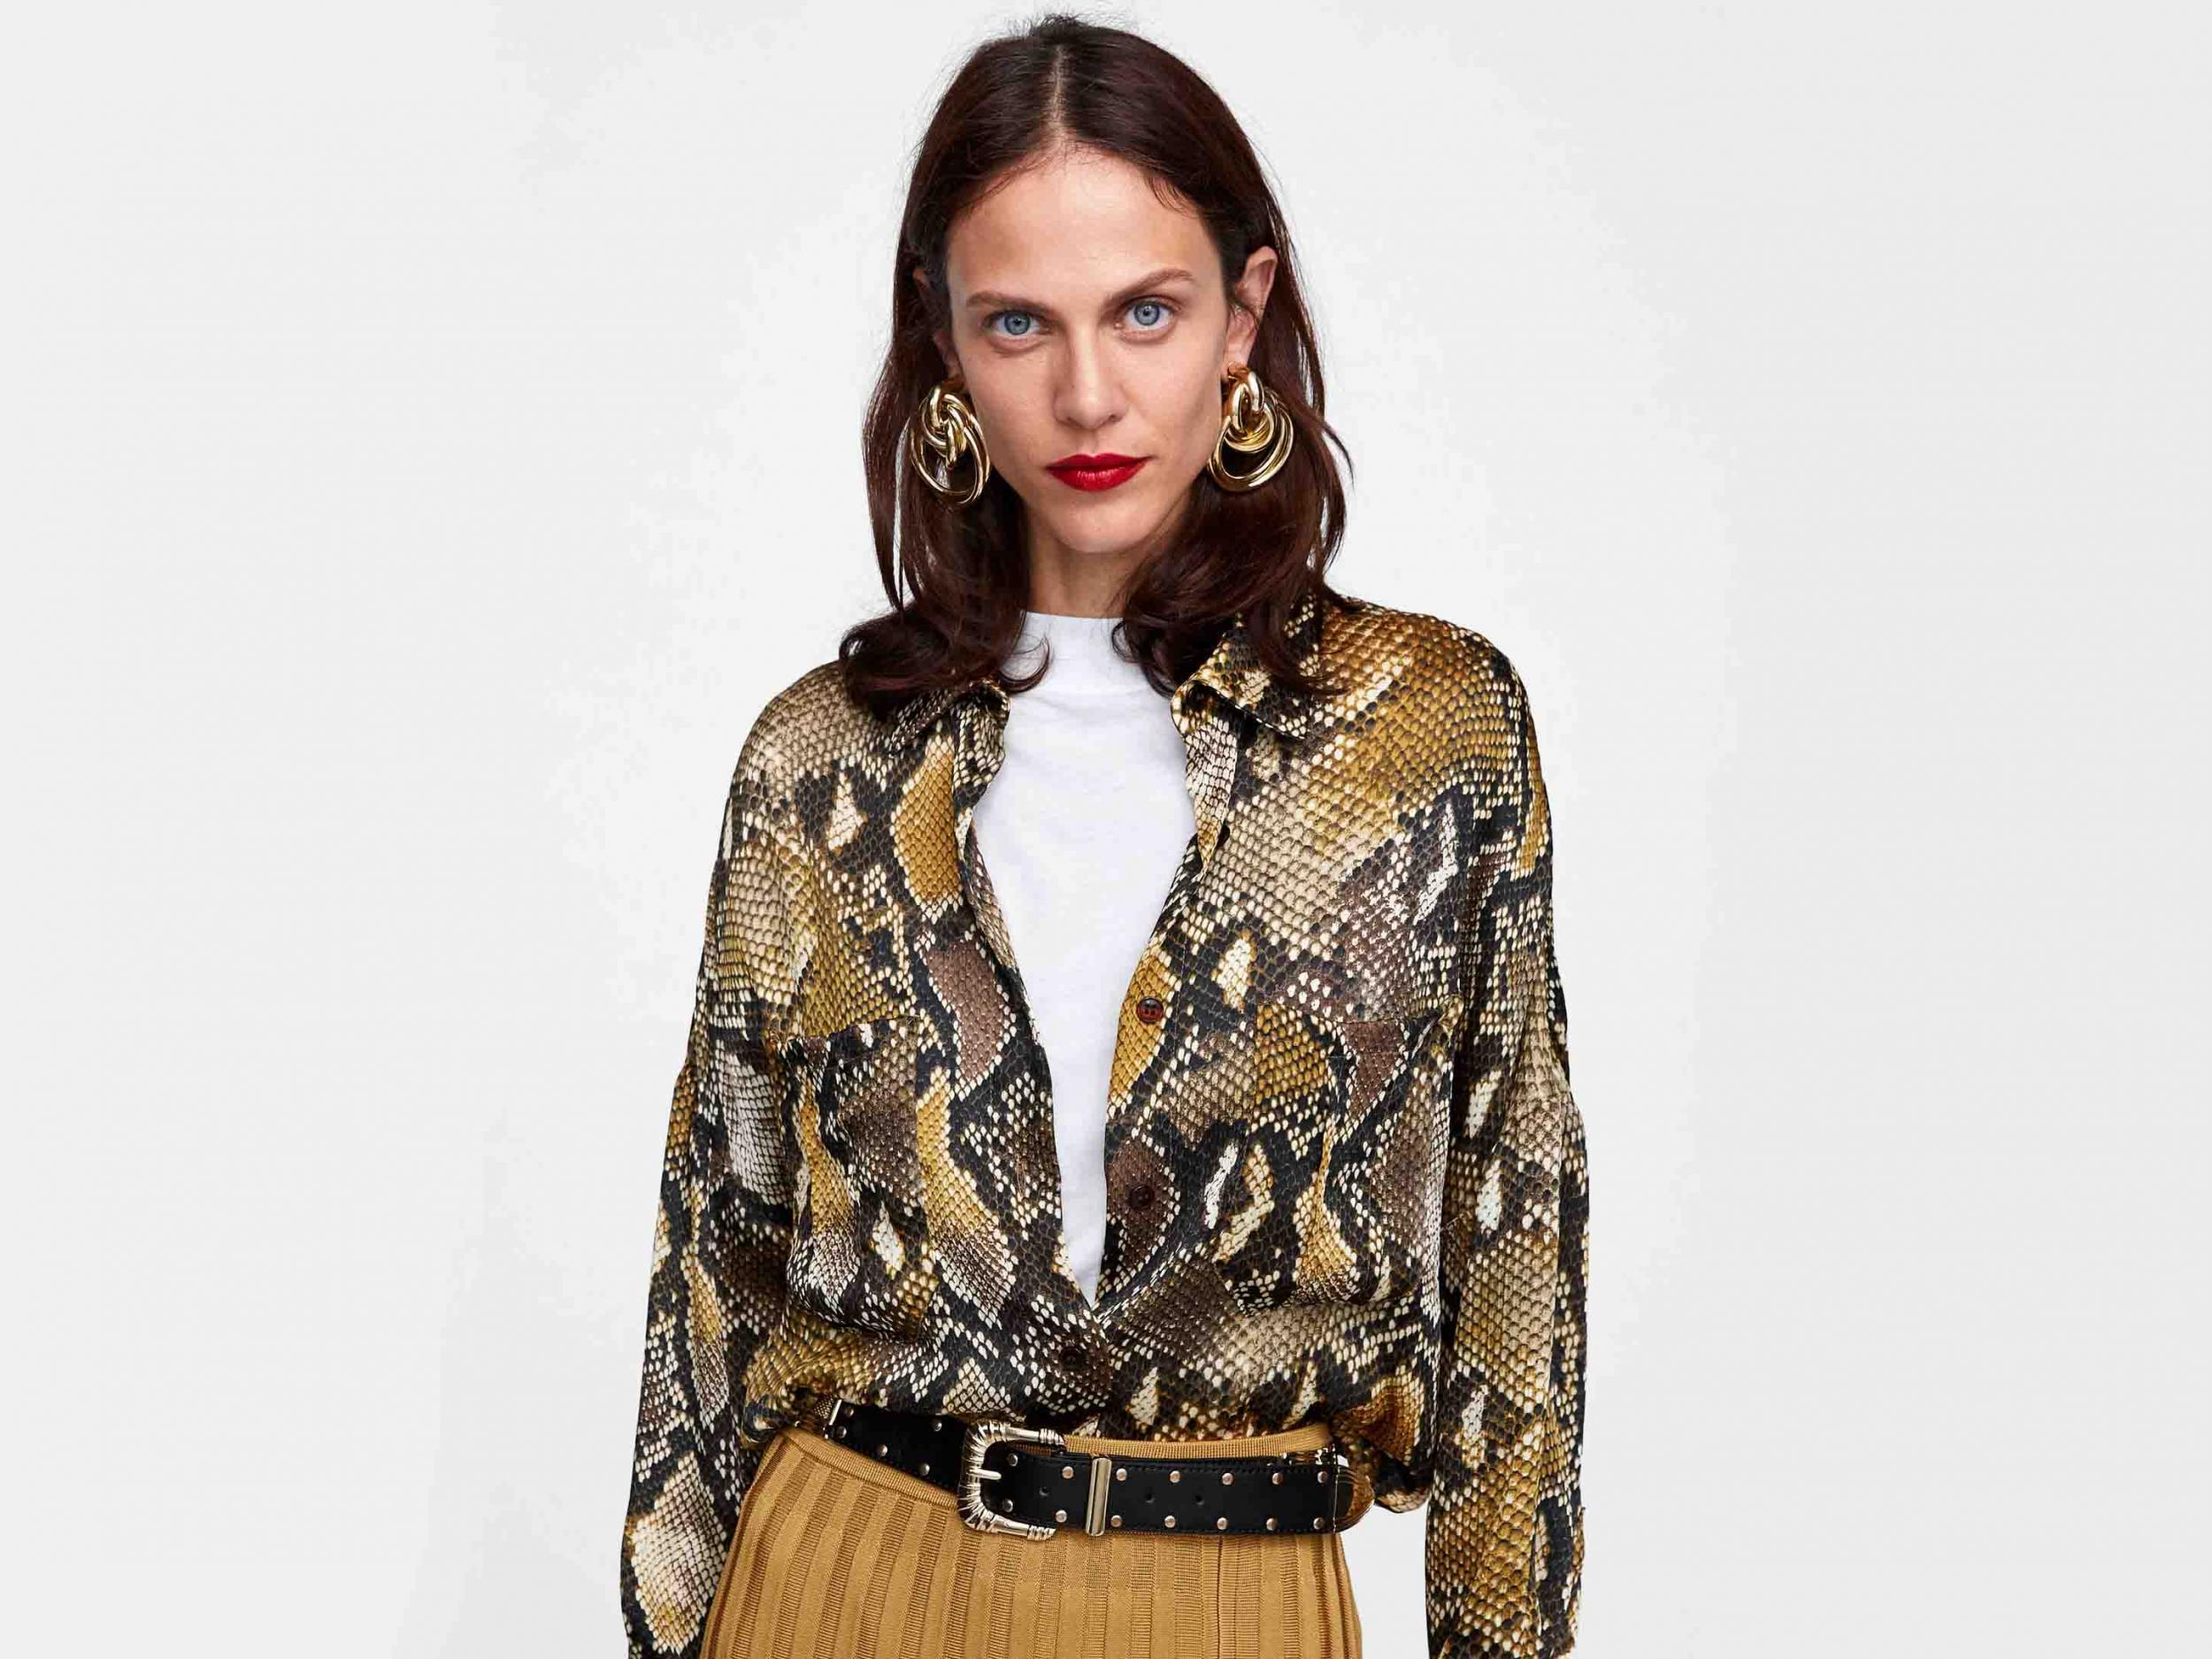 2a2611c617fe0 Snake print has taken over leopard as this season s must-have trend ...